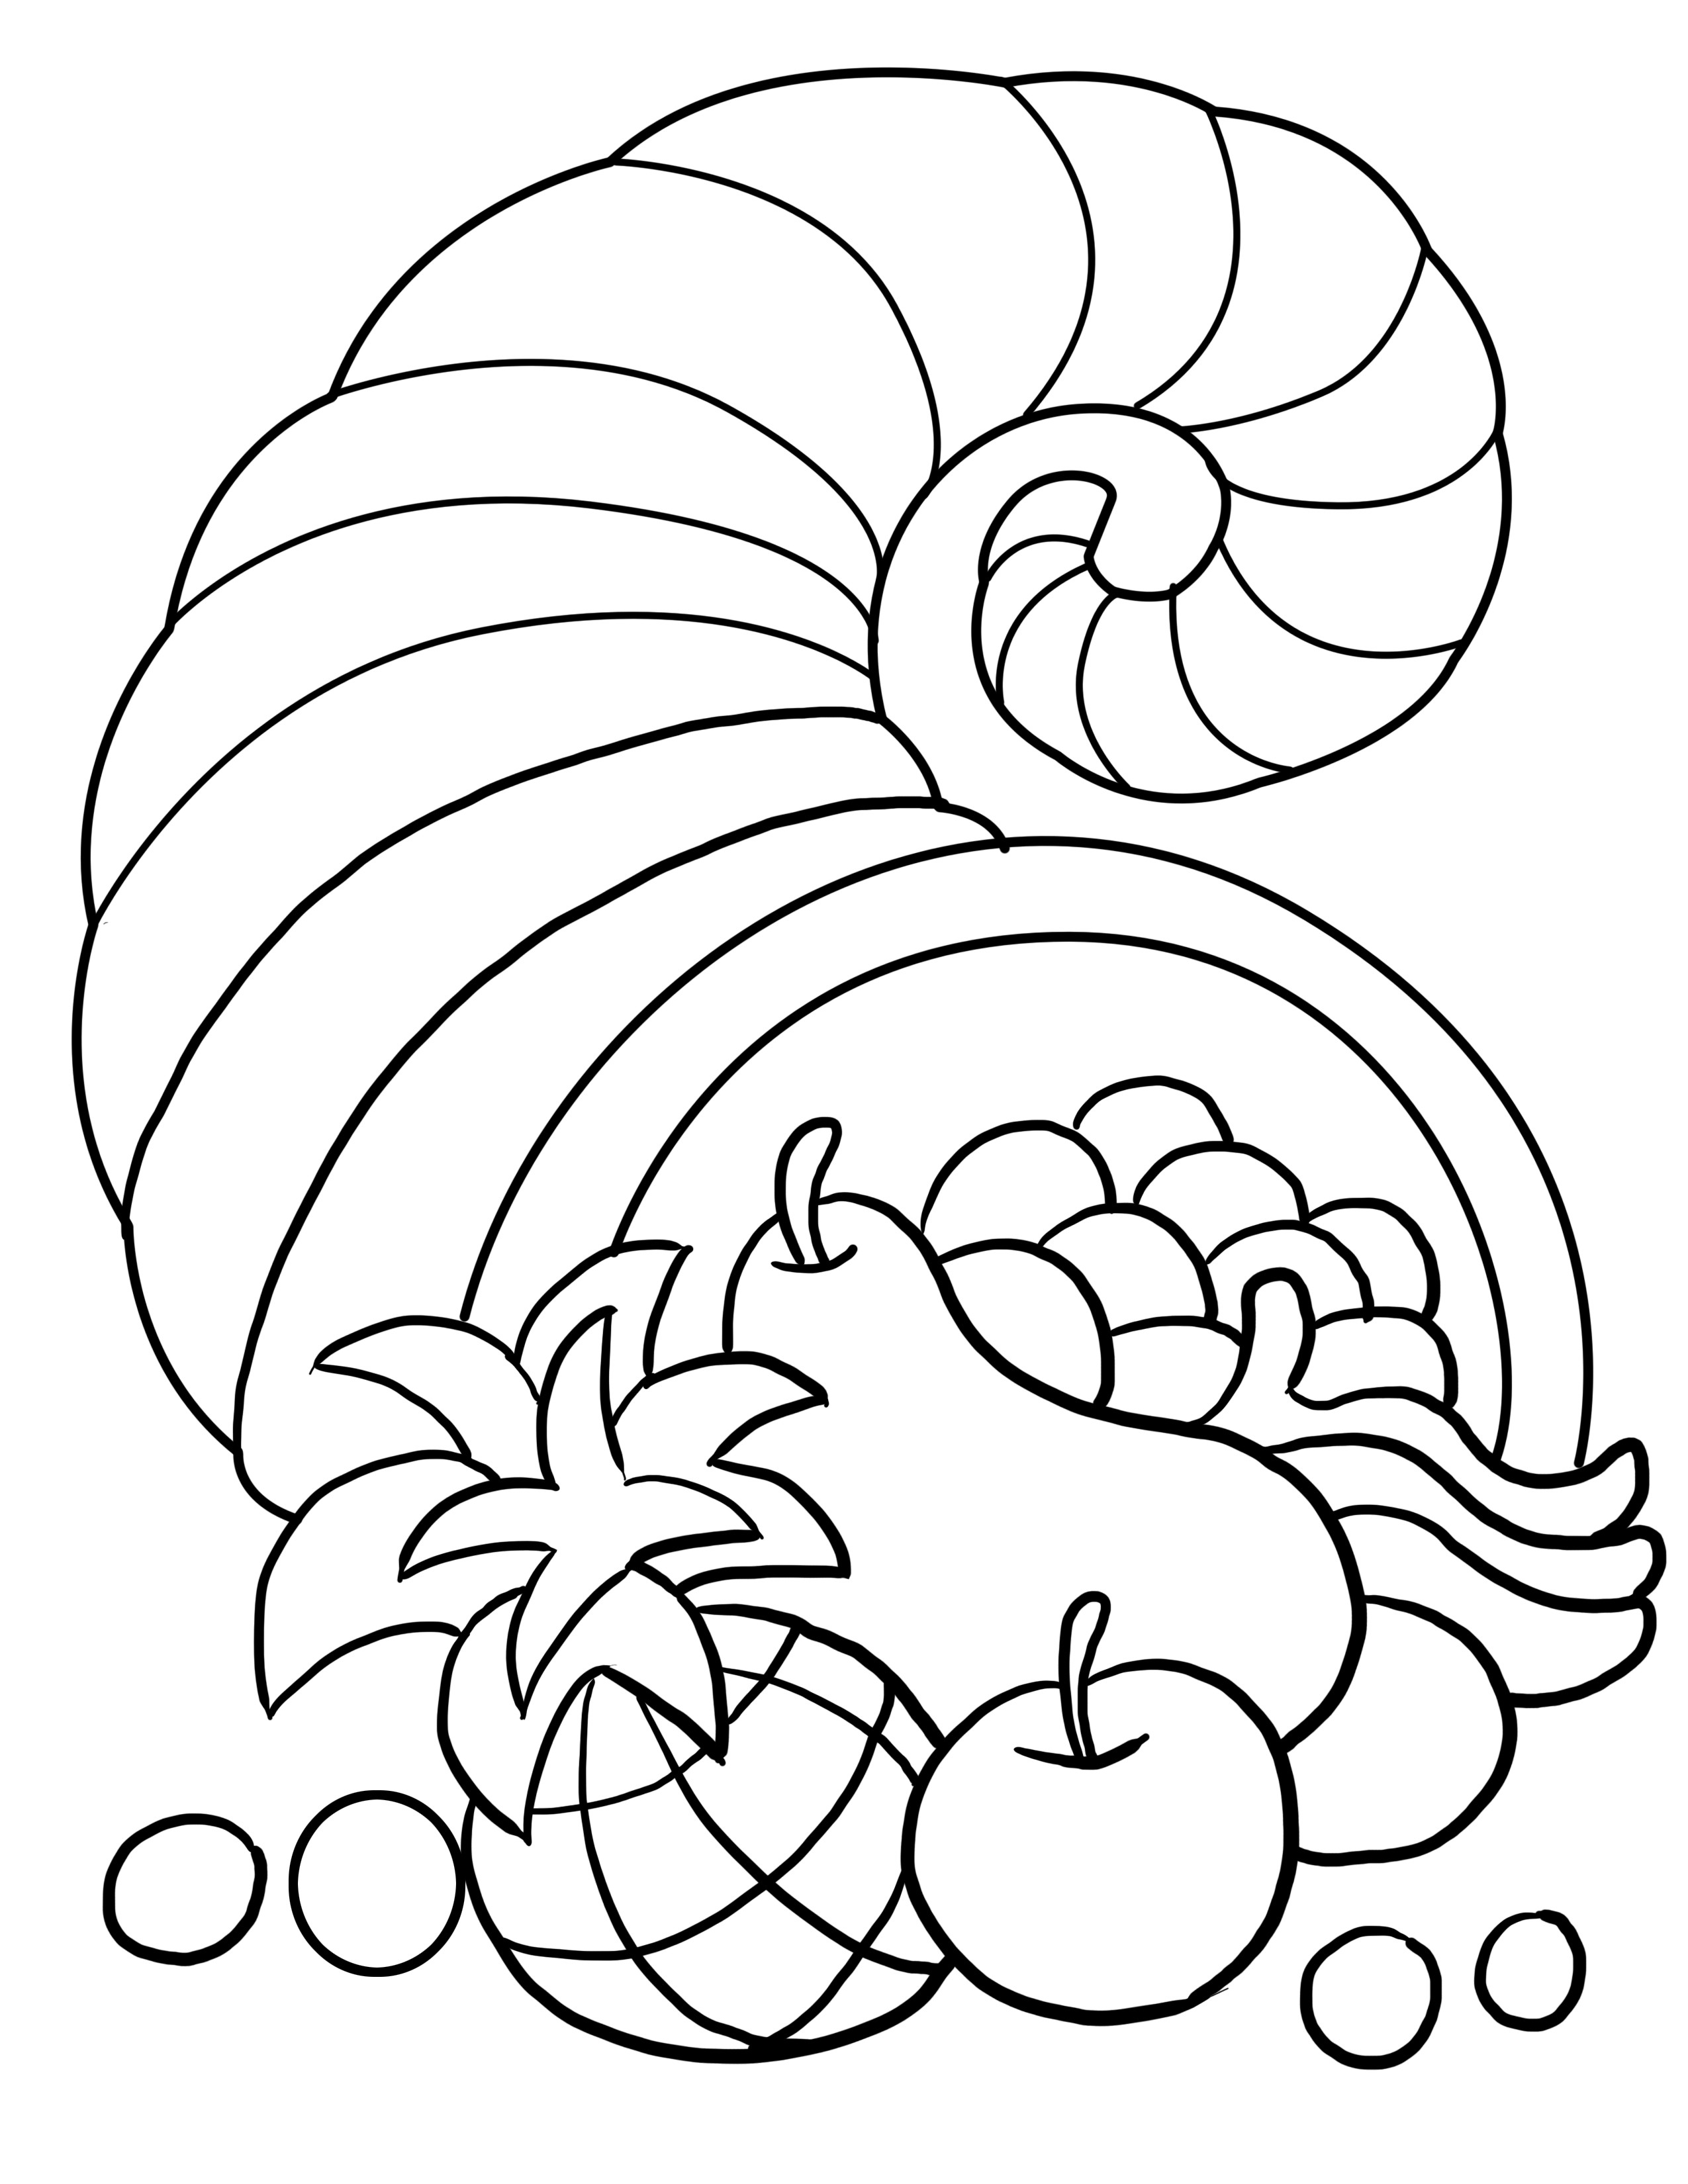 Thanksgiving Turkey To Color  Thanksgiving Coloring Pages